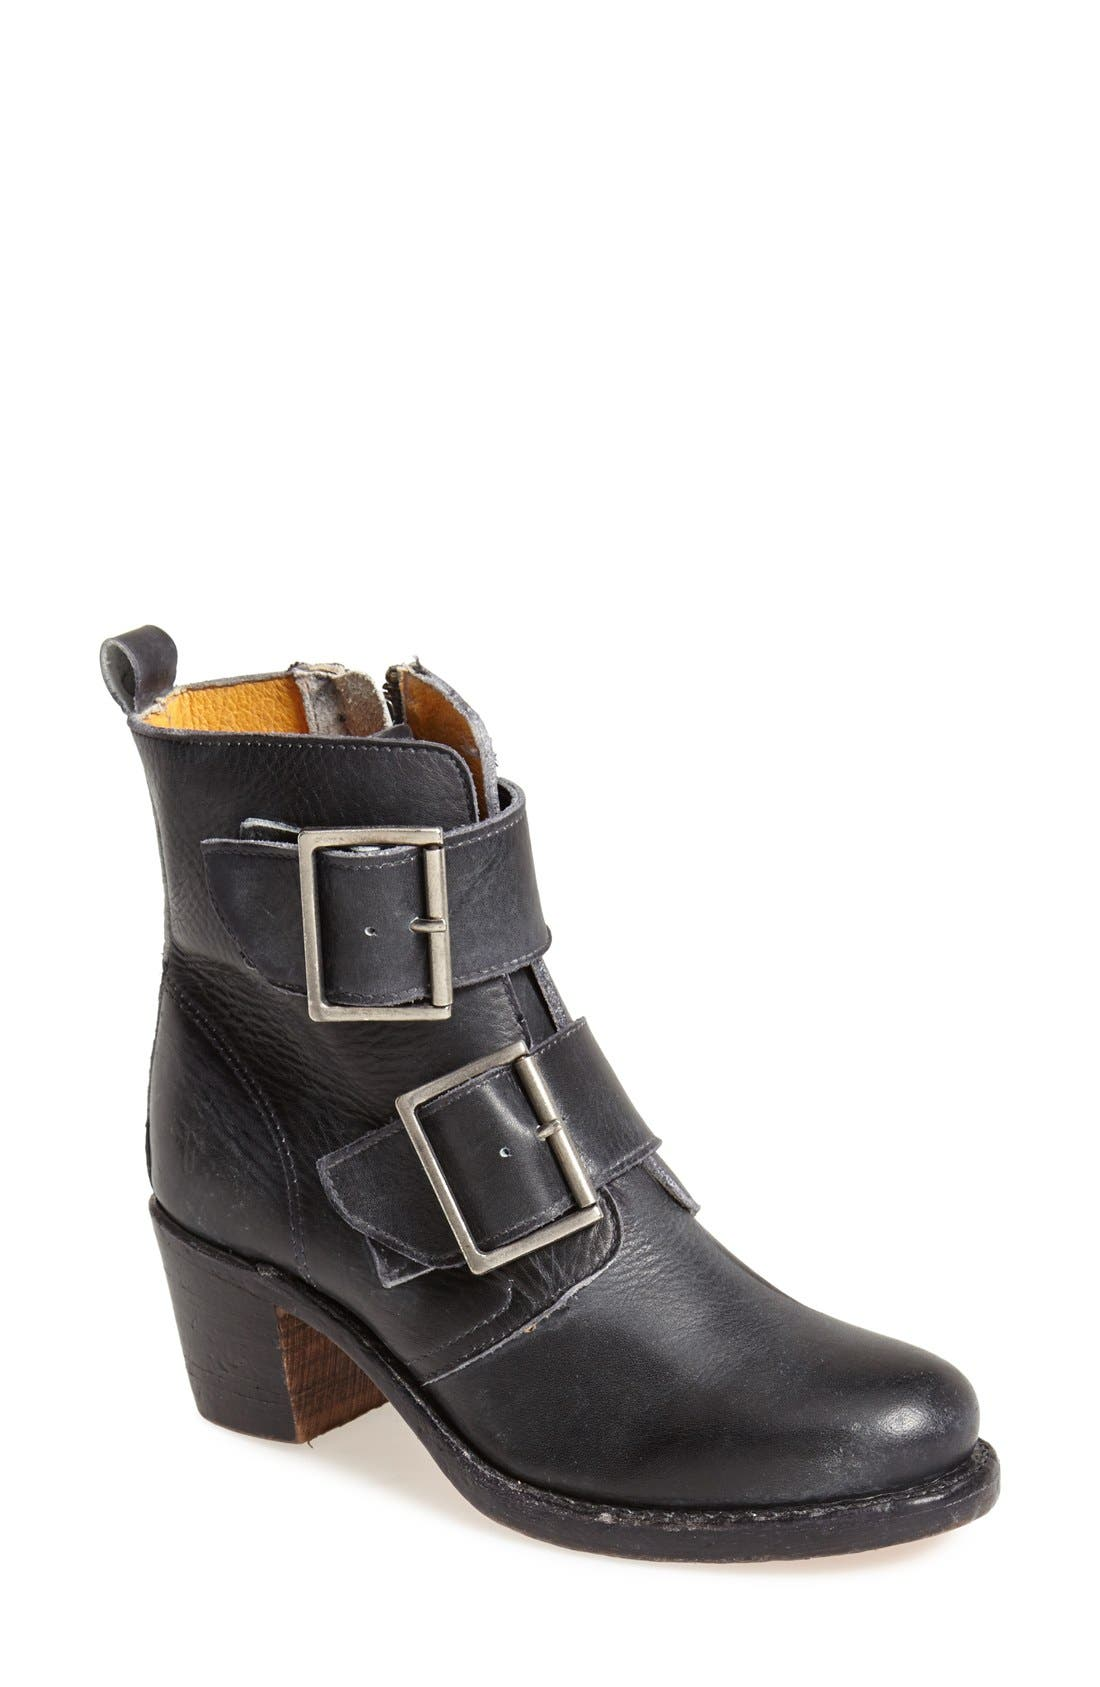 FRYE,                             'Sabrina' Double Buckle Bootie,                             Main thumbnail 1, color,                             001